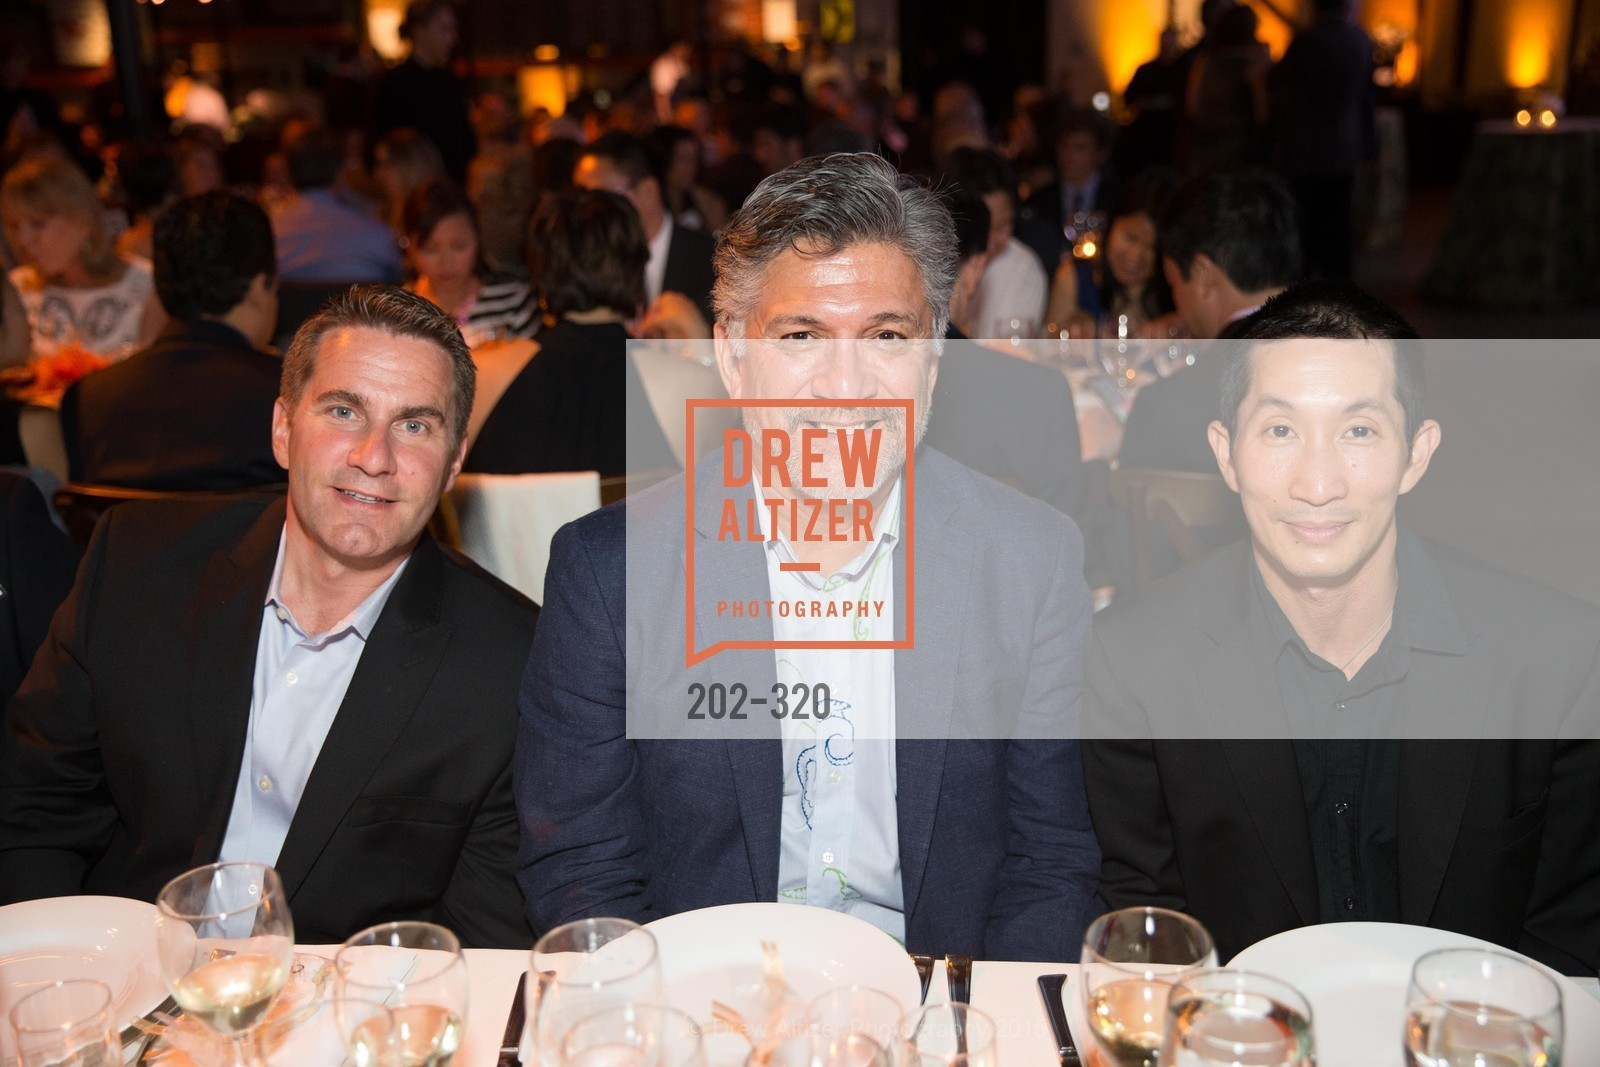 Alan Croteau, Mario Diaz, Tony Lee, SF - Marin Food Bank Presents ONE BIG TABLE, SF- Marin Food Bank. 900 Pennsylvania Ave, September 26th, 2015,Drew Altizer, Drew Altizer Photography, full-service agency, private events, San Francisco photographer, photographer california